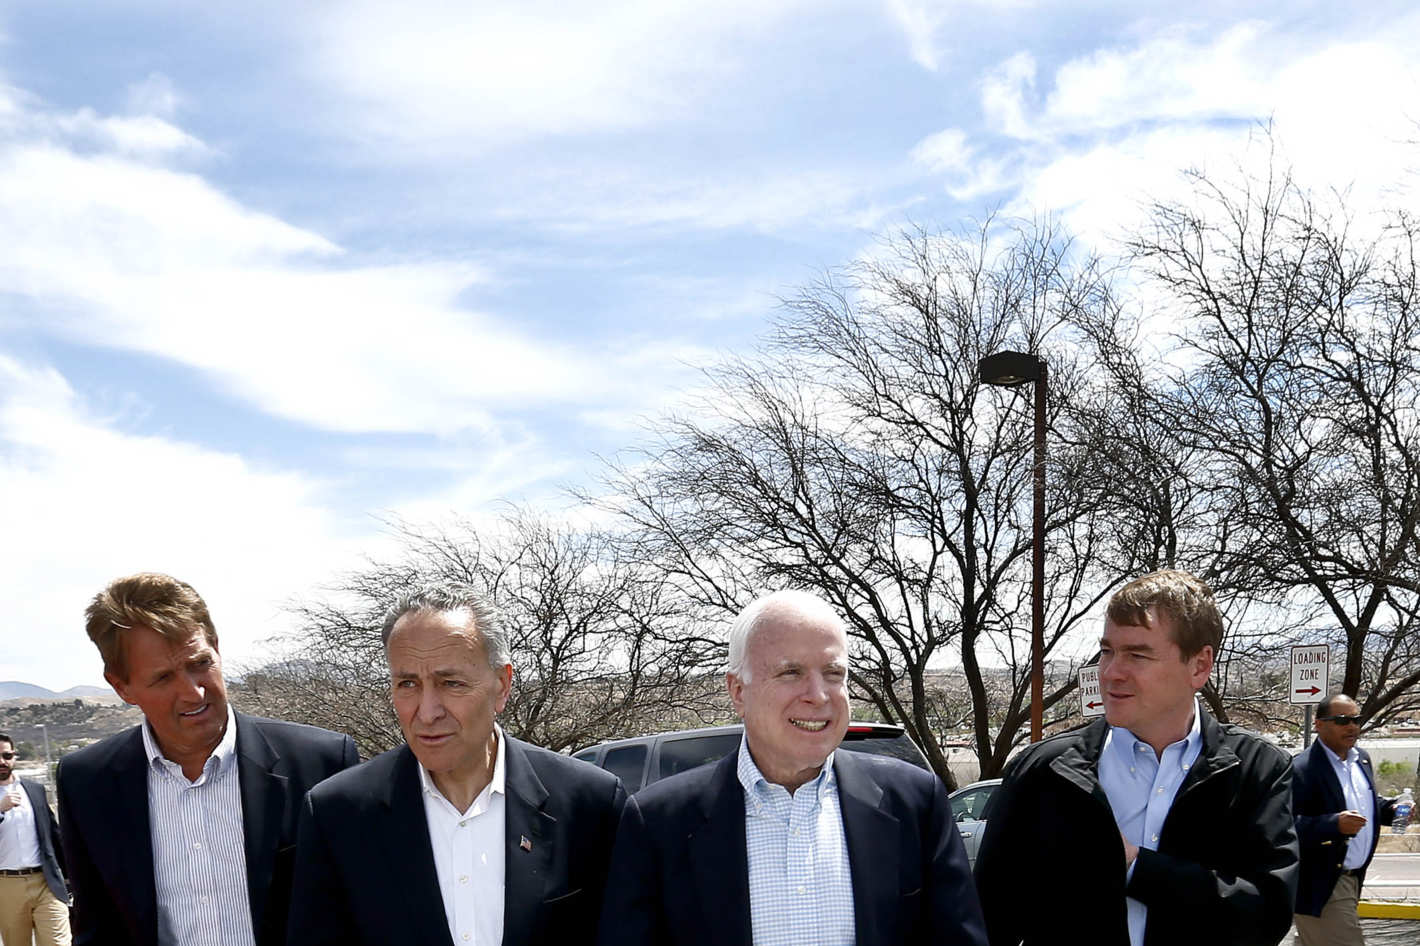 Donald Trump should look to Gang of Eight for immigration reform